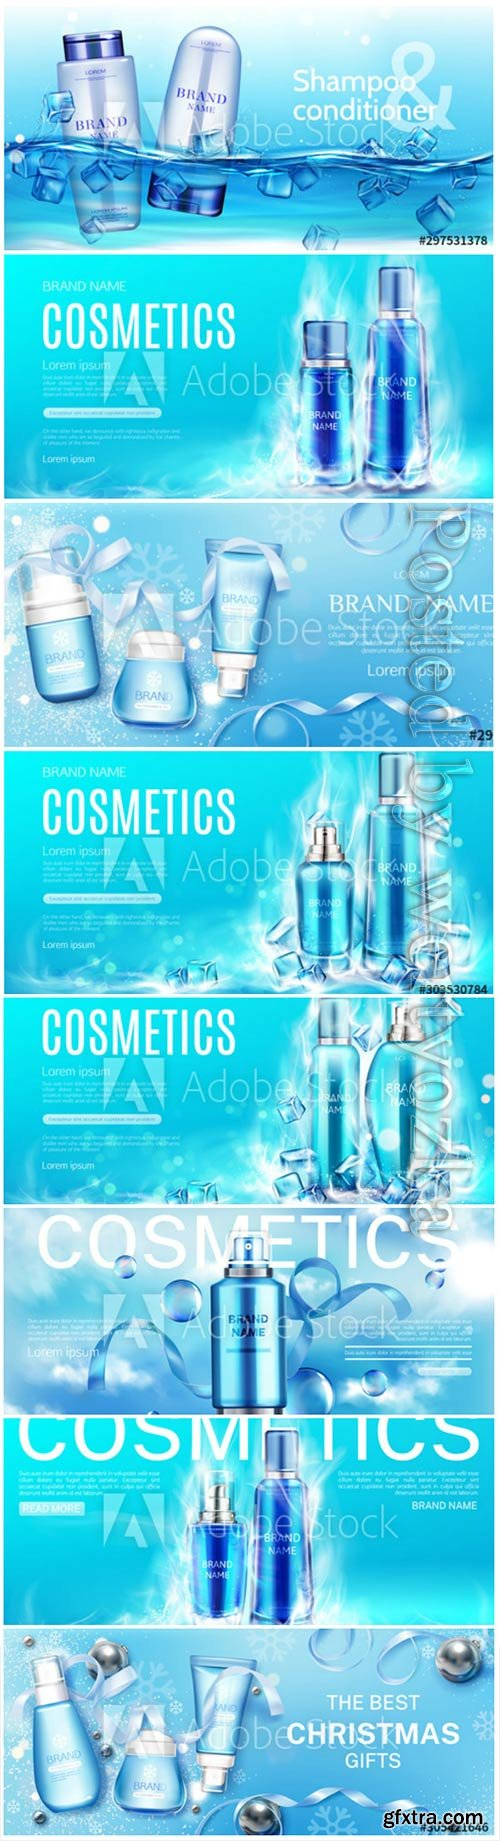 Beauty product cosmetic advertising promo poster realistic 3d vector